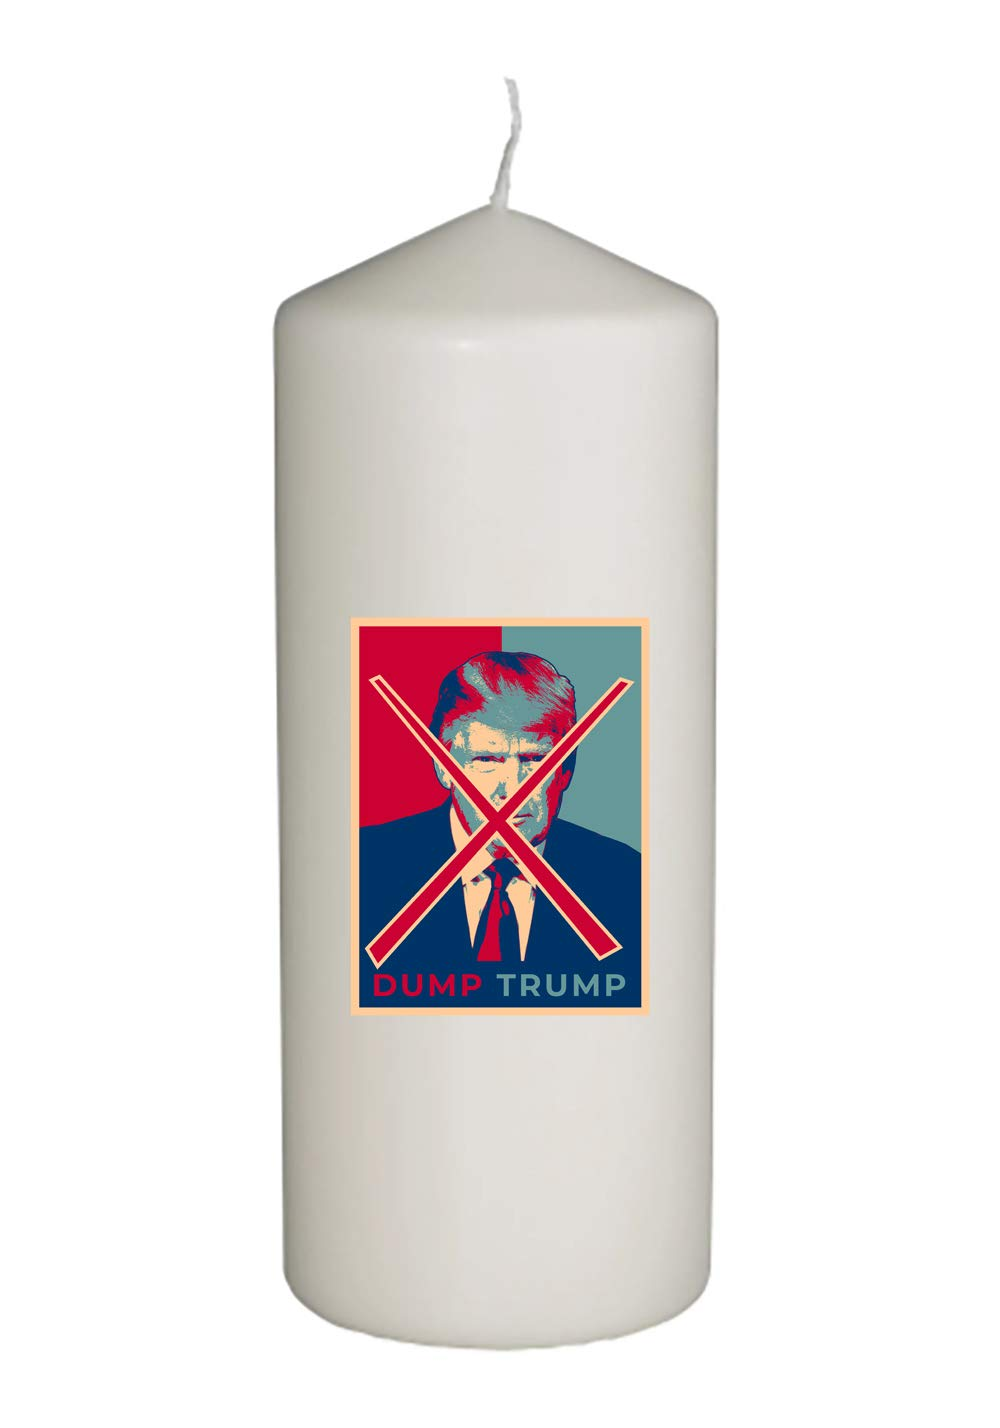 Thick White in Full Color Unity Candle Hat Shark United States USA President Dump Donald Trump Election Voting 2020 Party White House Candidates